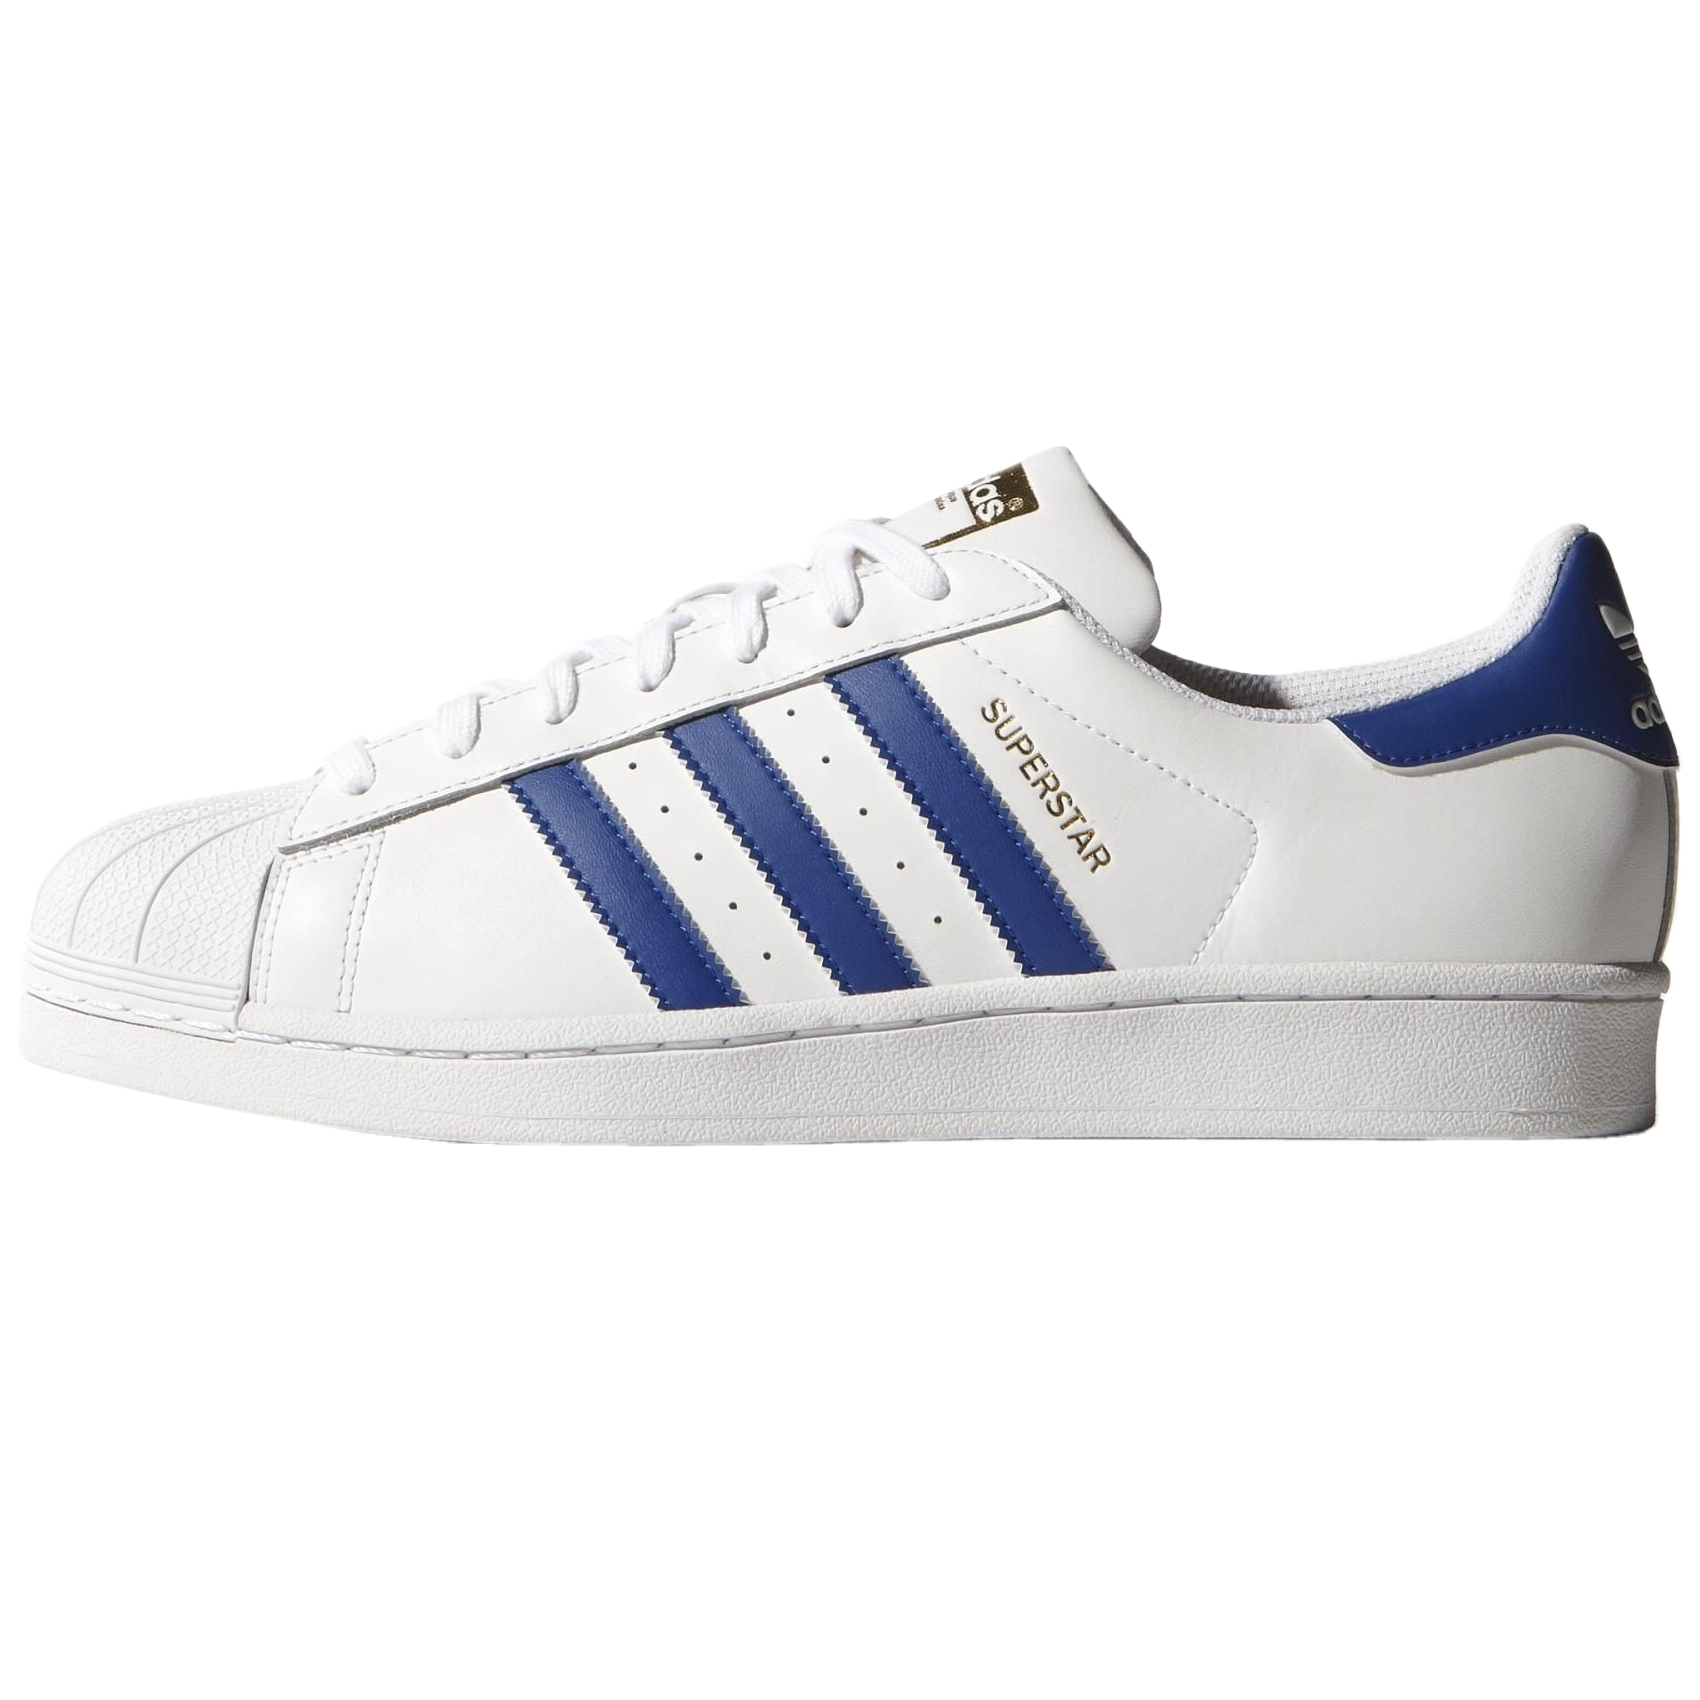 pretty nice 1ebef a73c3 ... ADIDAS ORIGINALS superstar Foundation zapatos zapatillas zapatillas de deporte  caballero mujer ...